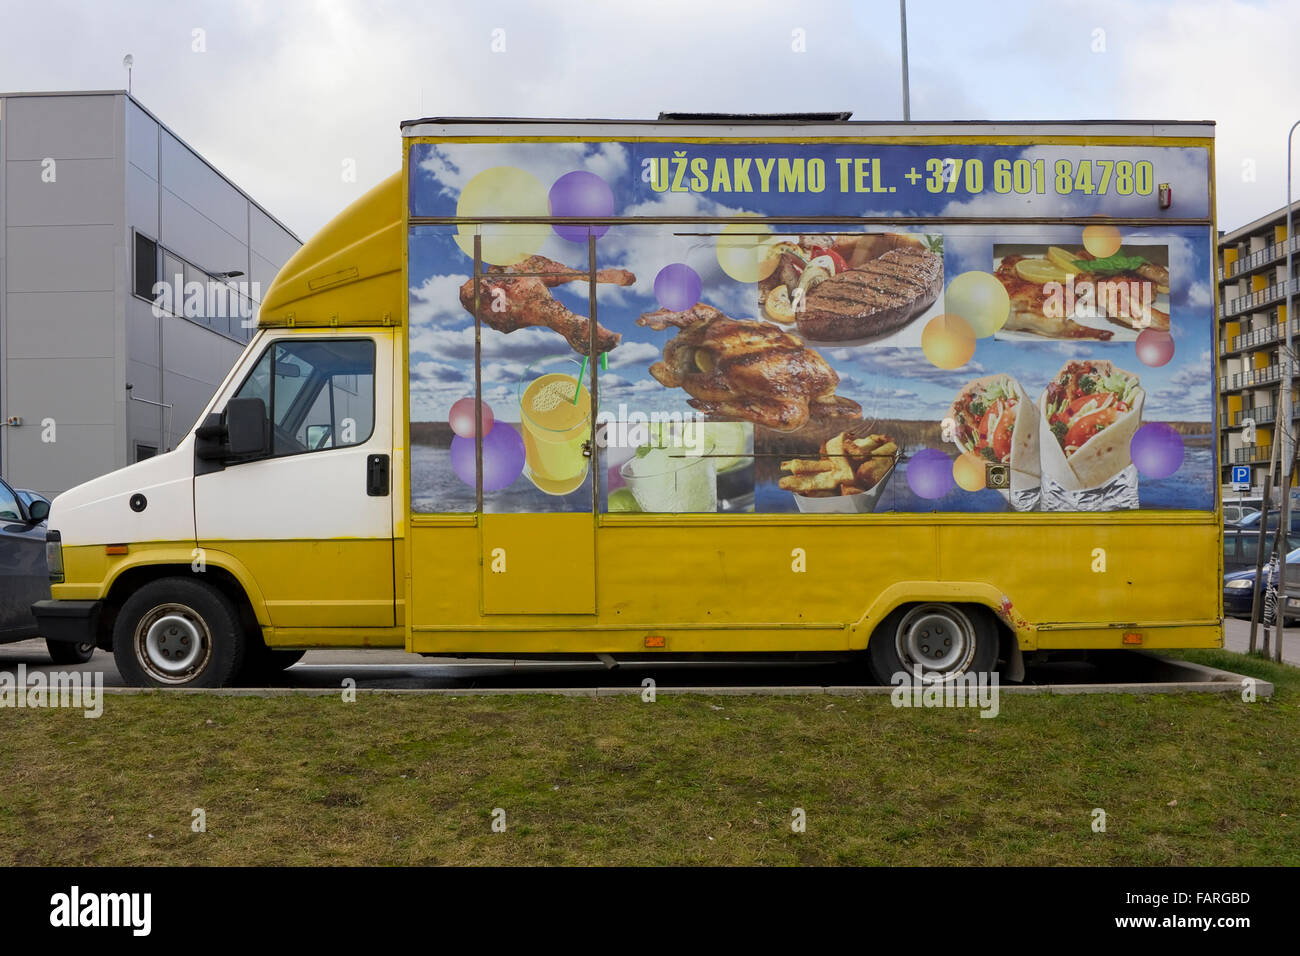 VILNIUS, LITHUANIA - DECEMBER 24, 2015: The car from which sells fast food on city street. For advertizing  it is - Stock Image